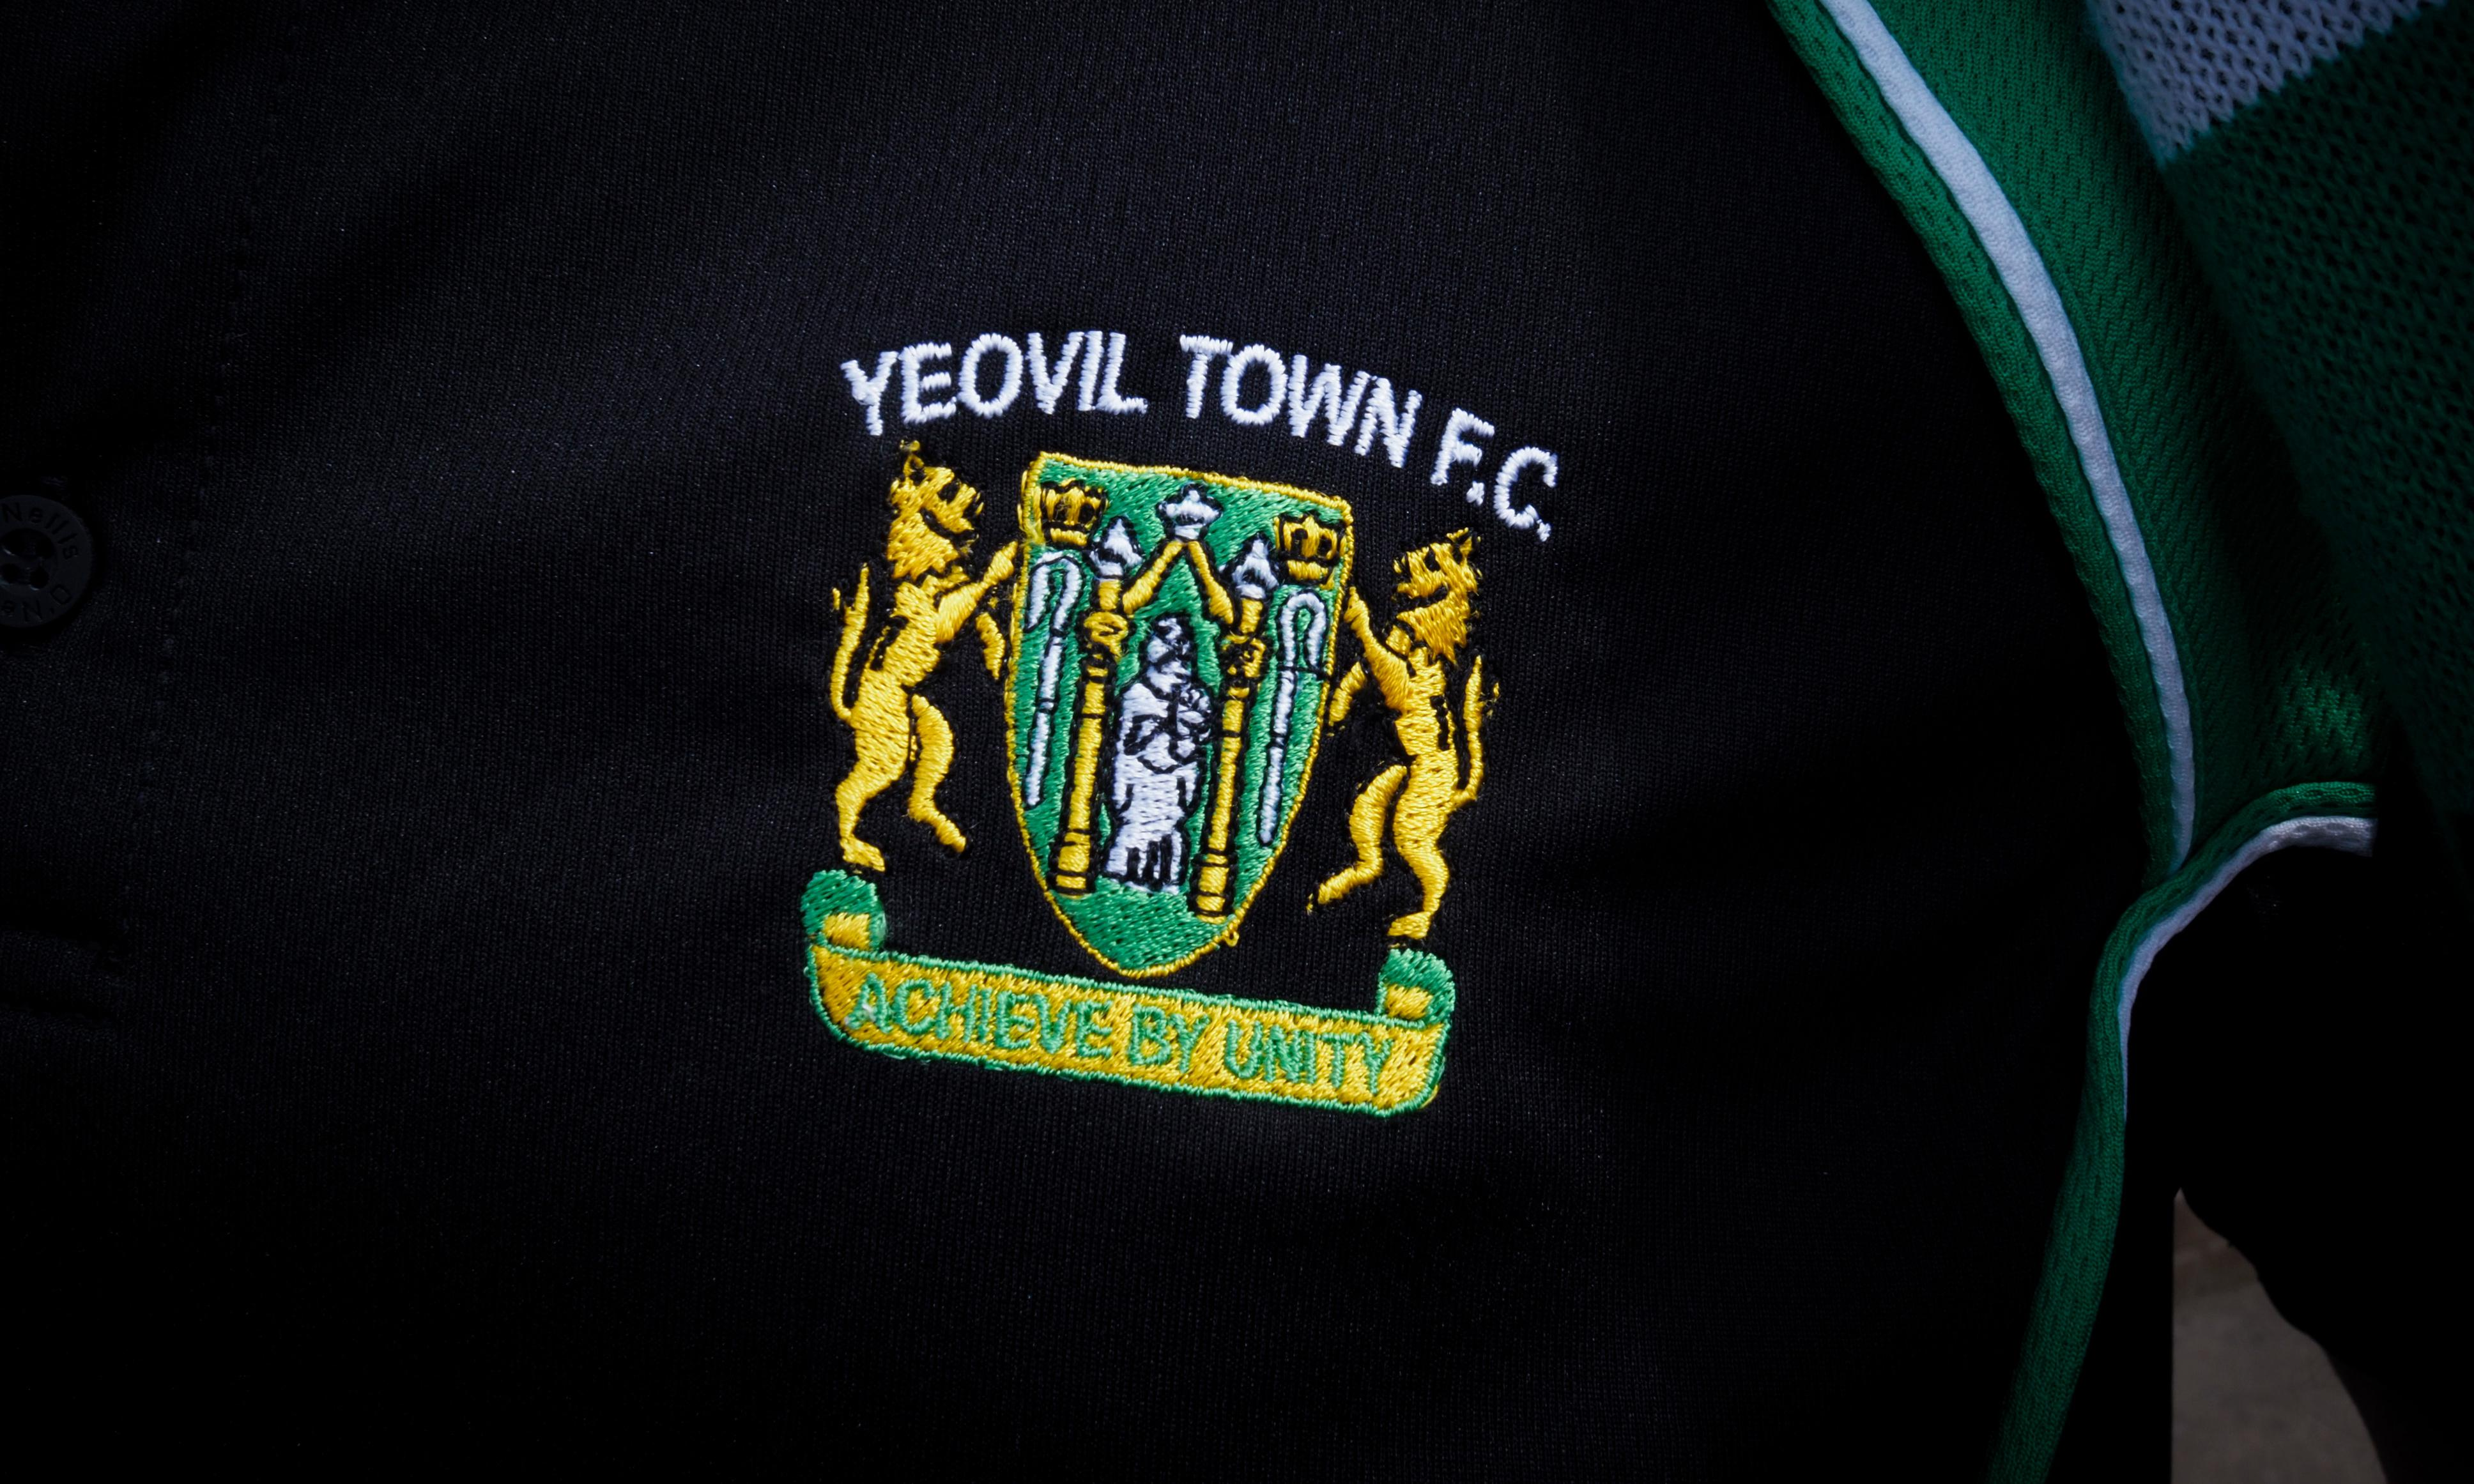 'We're not that sort of club': Yeovil in shock over racism claims